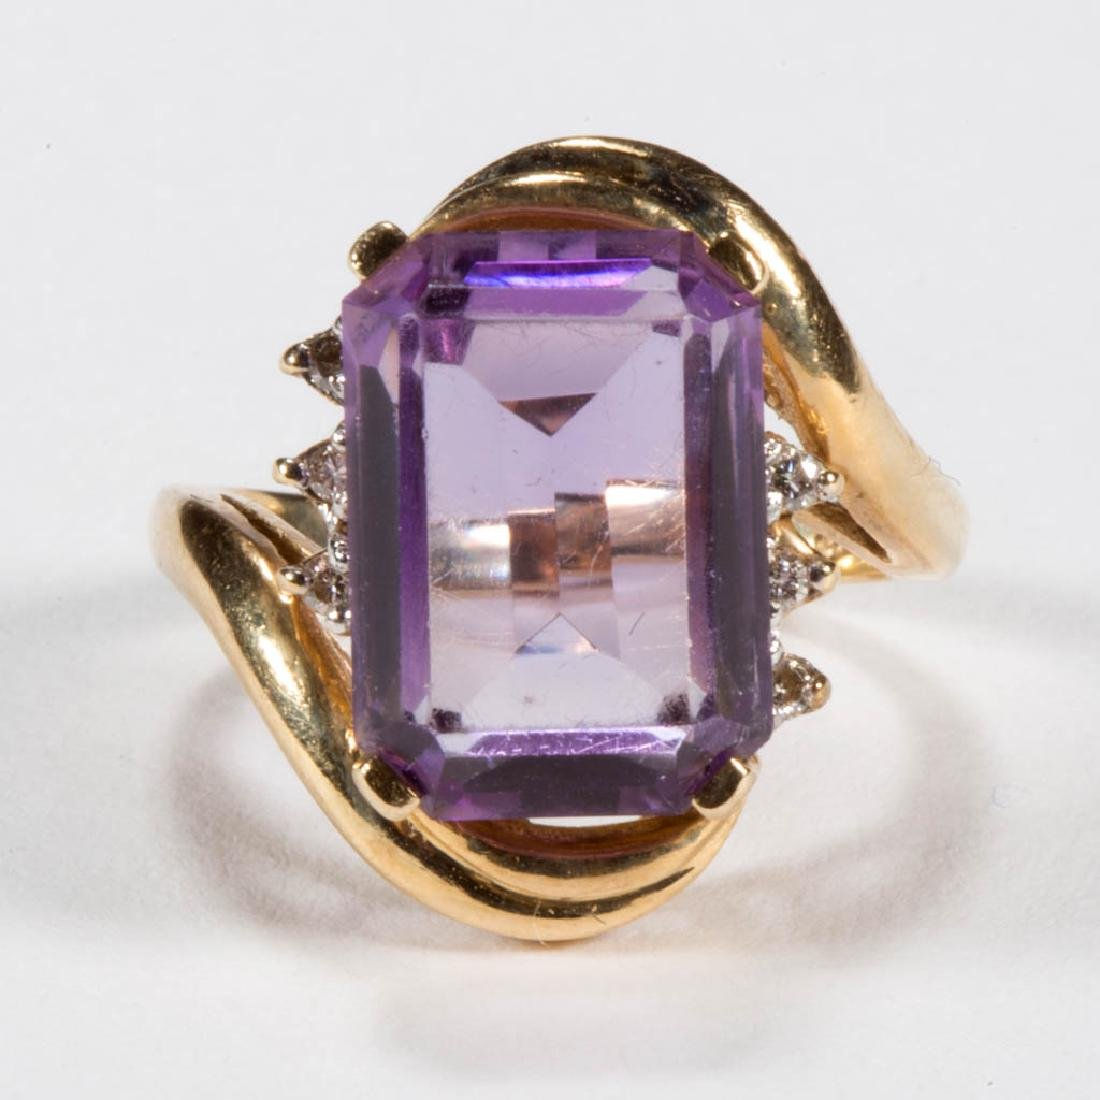 VINTAGE 14K GOLD AND AMETHYST LADY'S RING